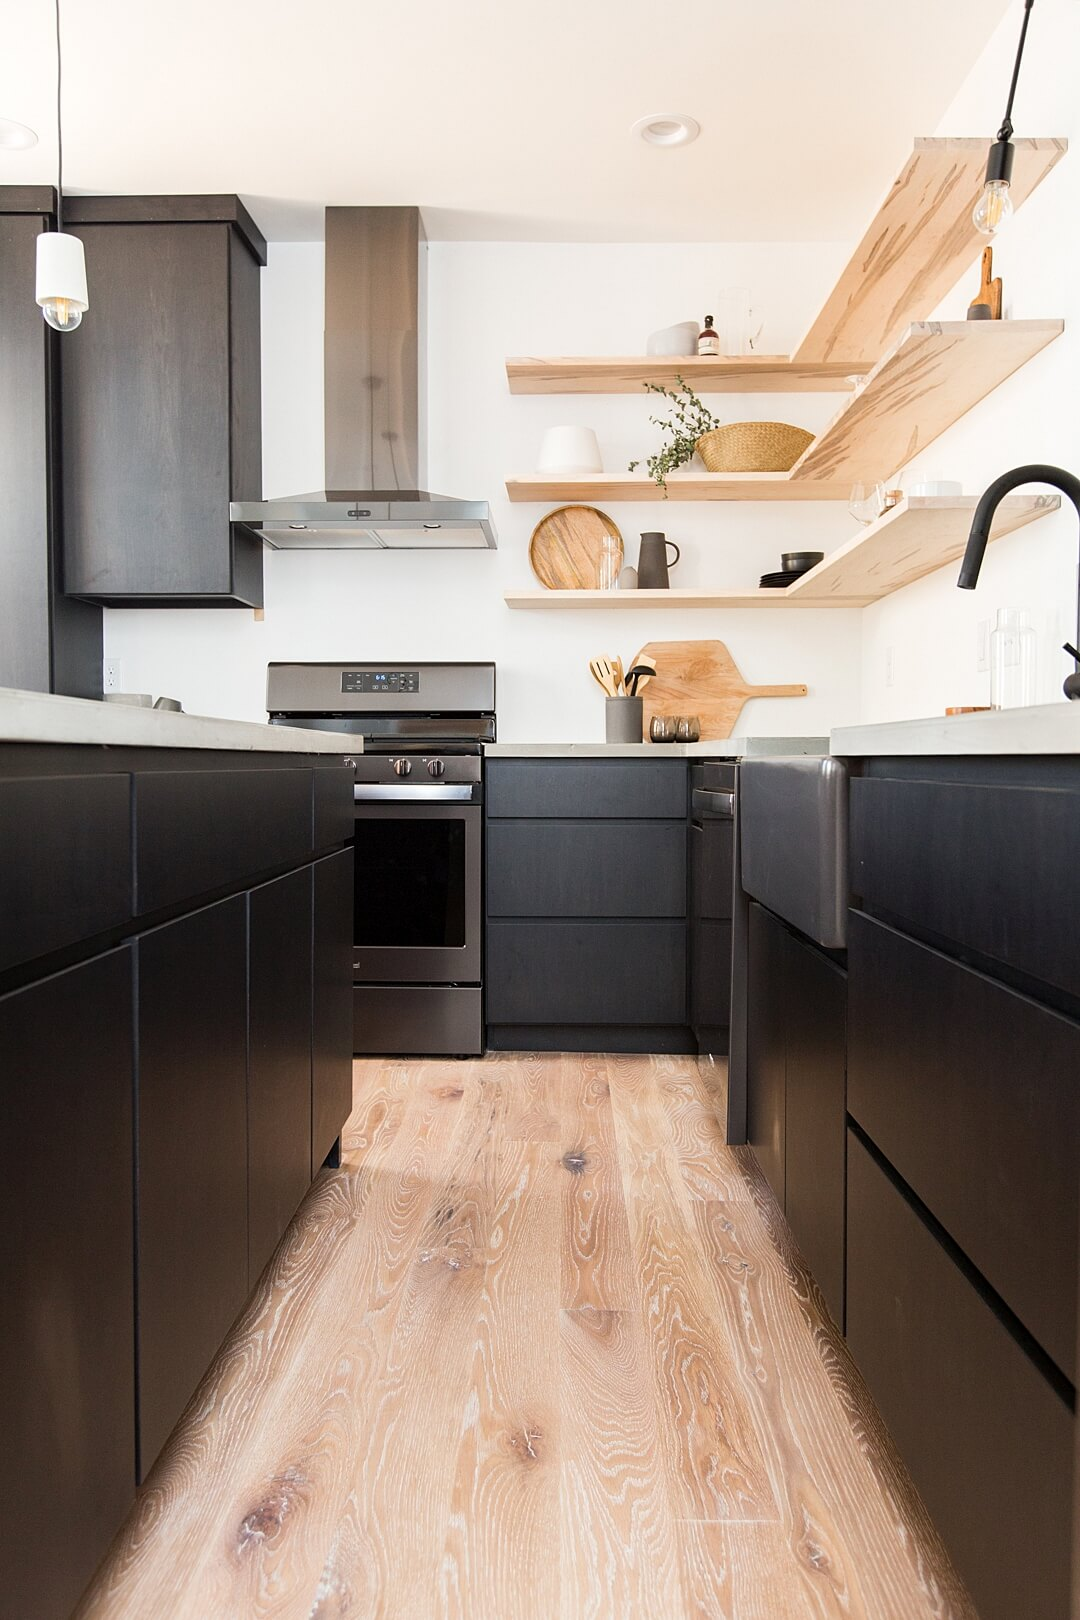 White oak flooring in a modern kitchen that had black cabinets and white oak floating shelves.